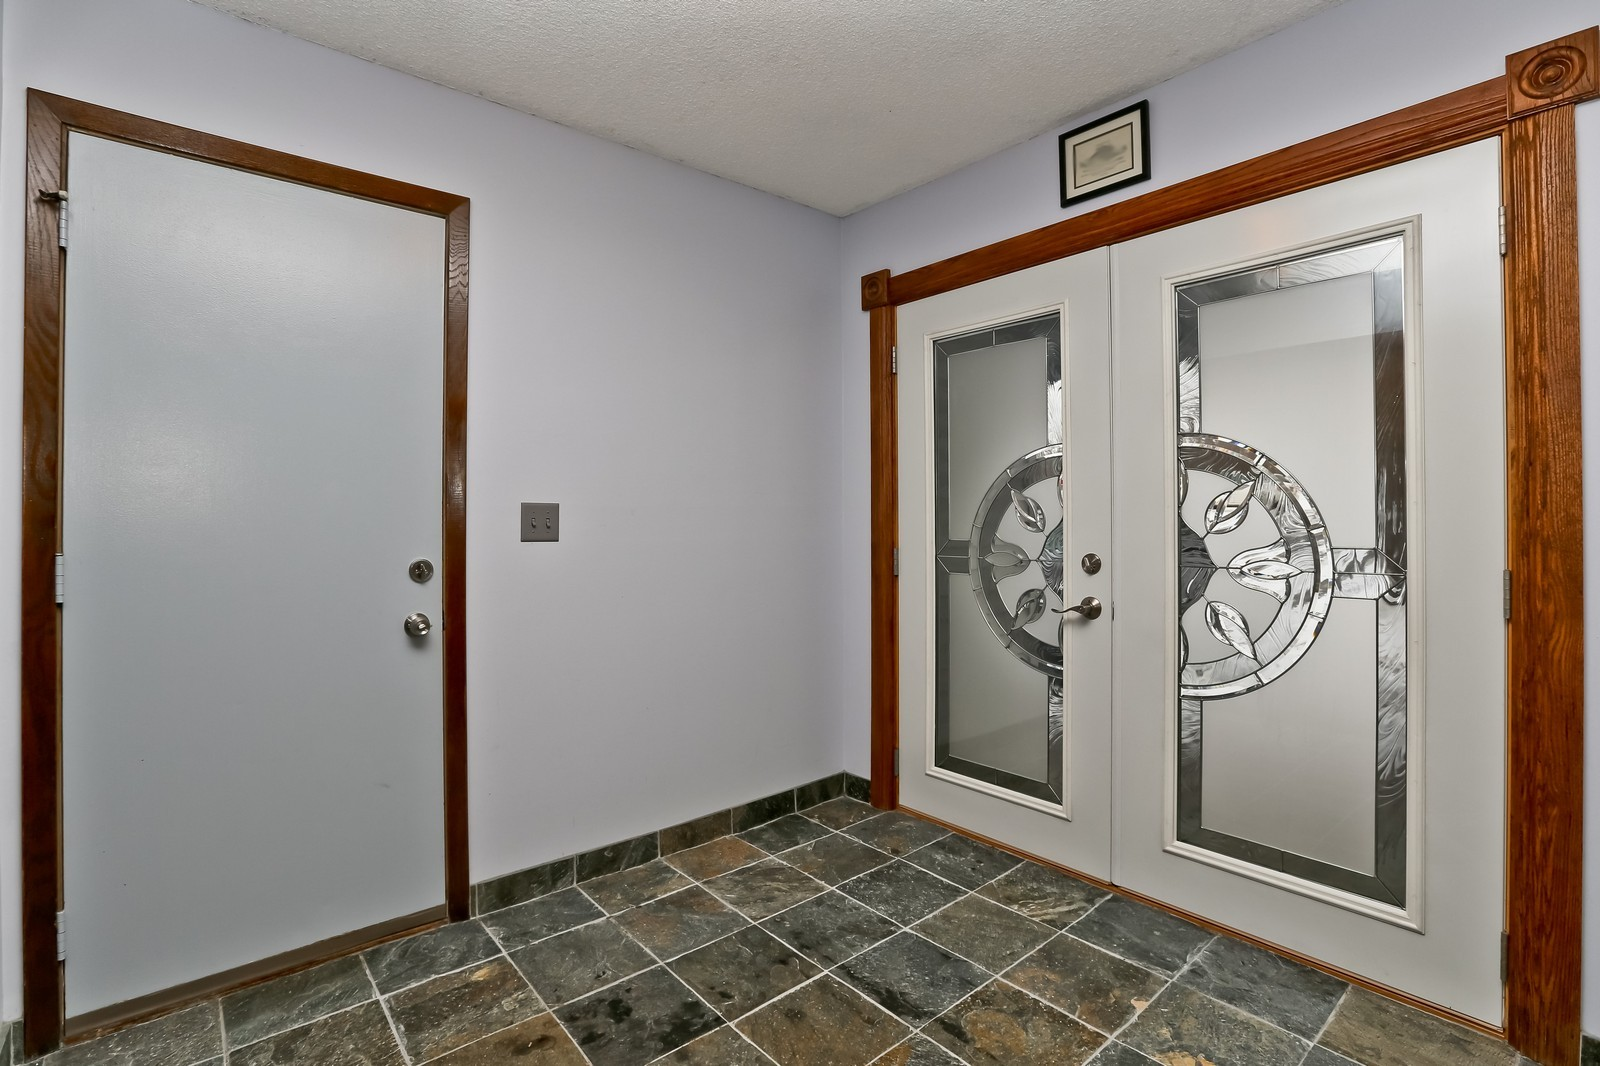 Real Estate Photography - 3250 Williams Lane, Minnetrista, MN, 55364 - Entryway